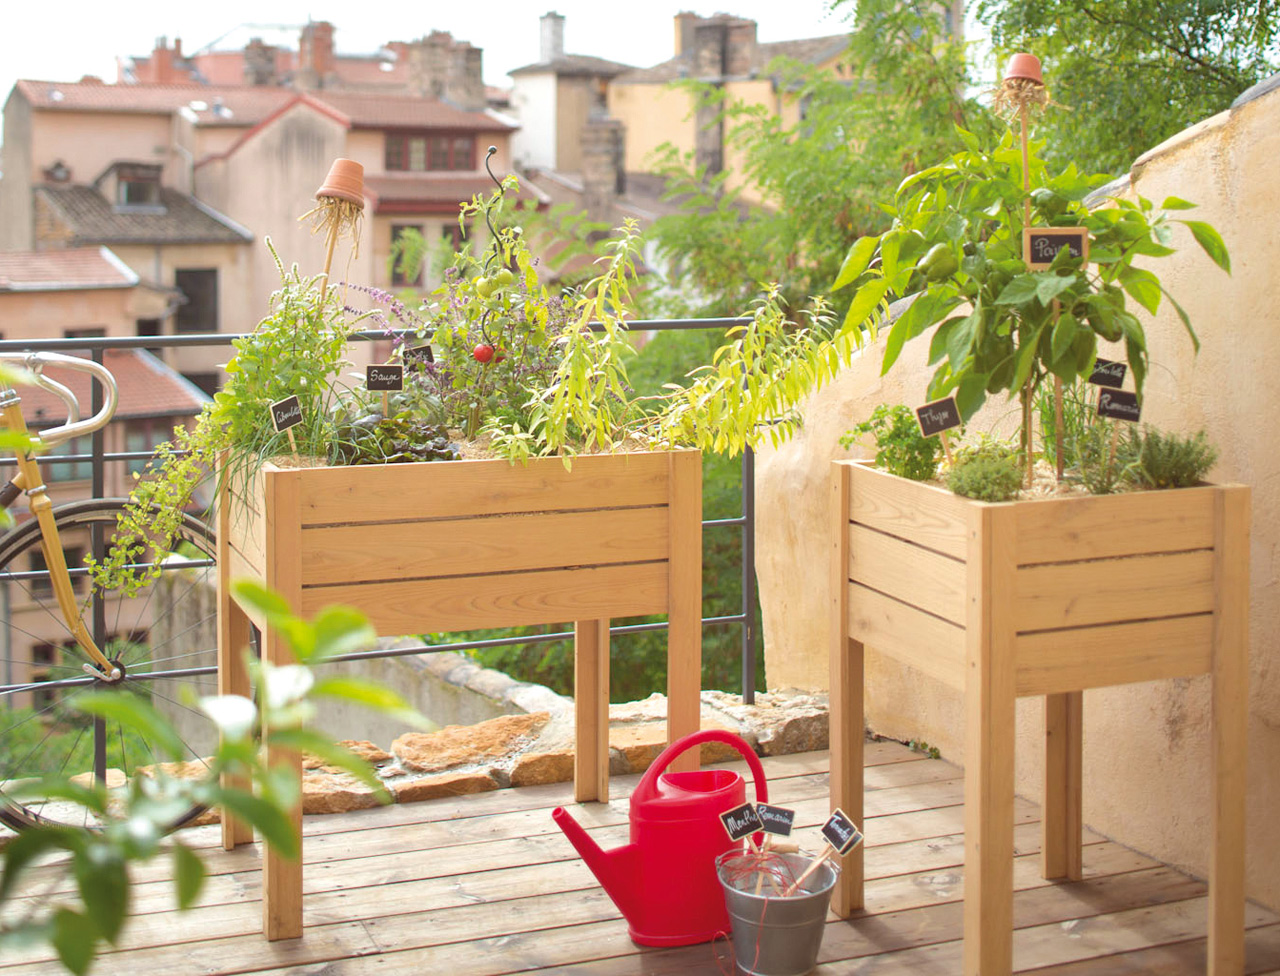 cr er un potager urbain sur un balcon. Black Bedroom Furniture Sets. Home Design Ideas